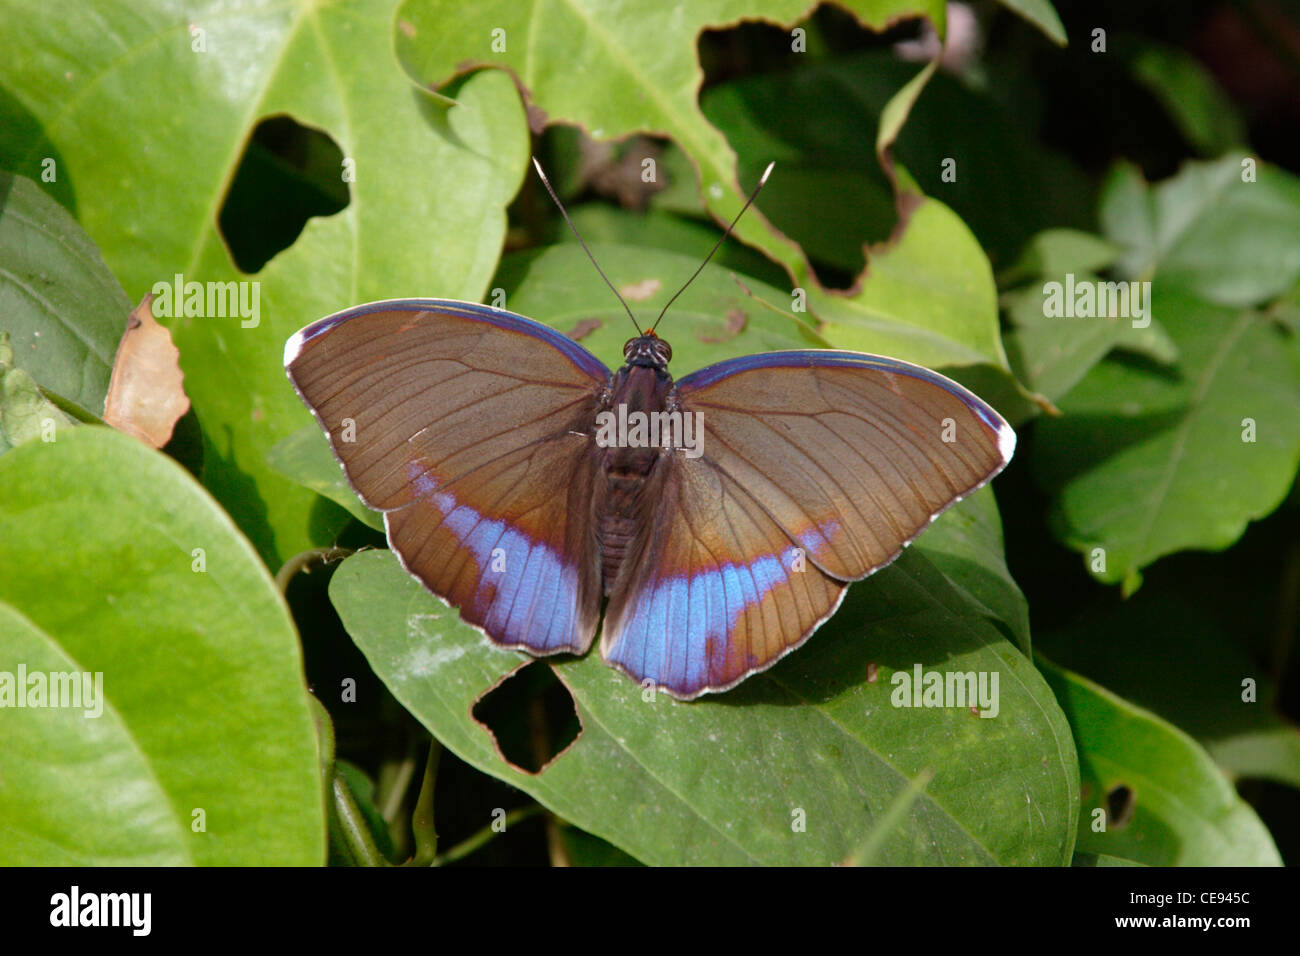 Diritto Hindwing Butterfly (Euphaedra harpalyce : Nymphalidae) maschio nella foresta pluviale, Ghana. Blu-nastrare Immagini Stock